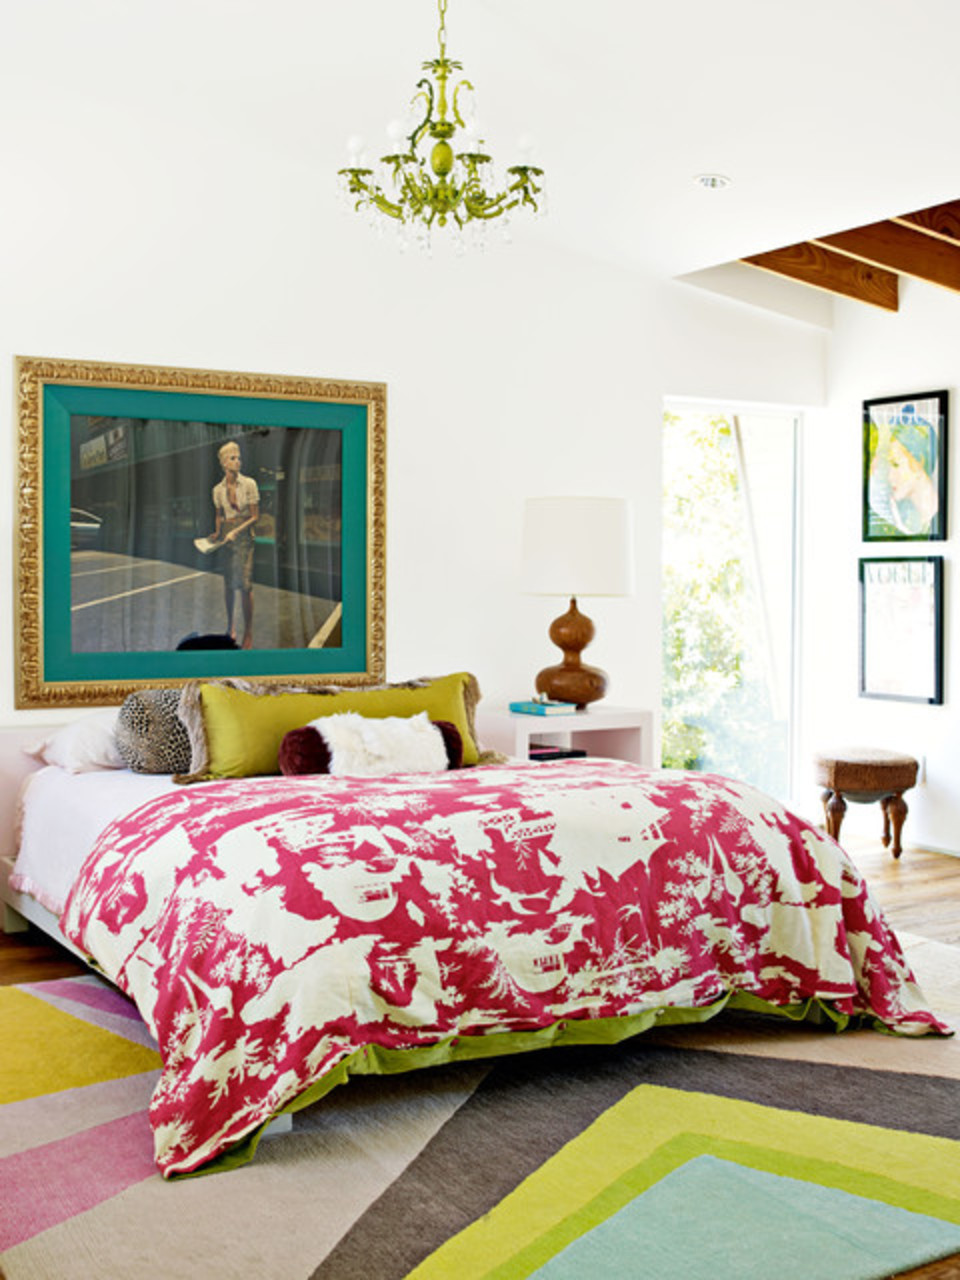 Make Way For Eclectic Home Décor 14